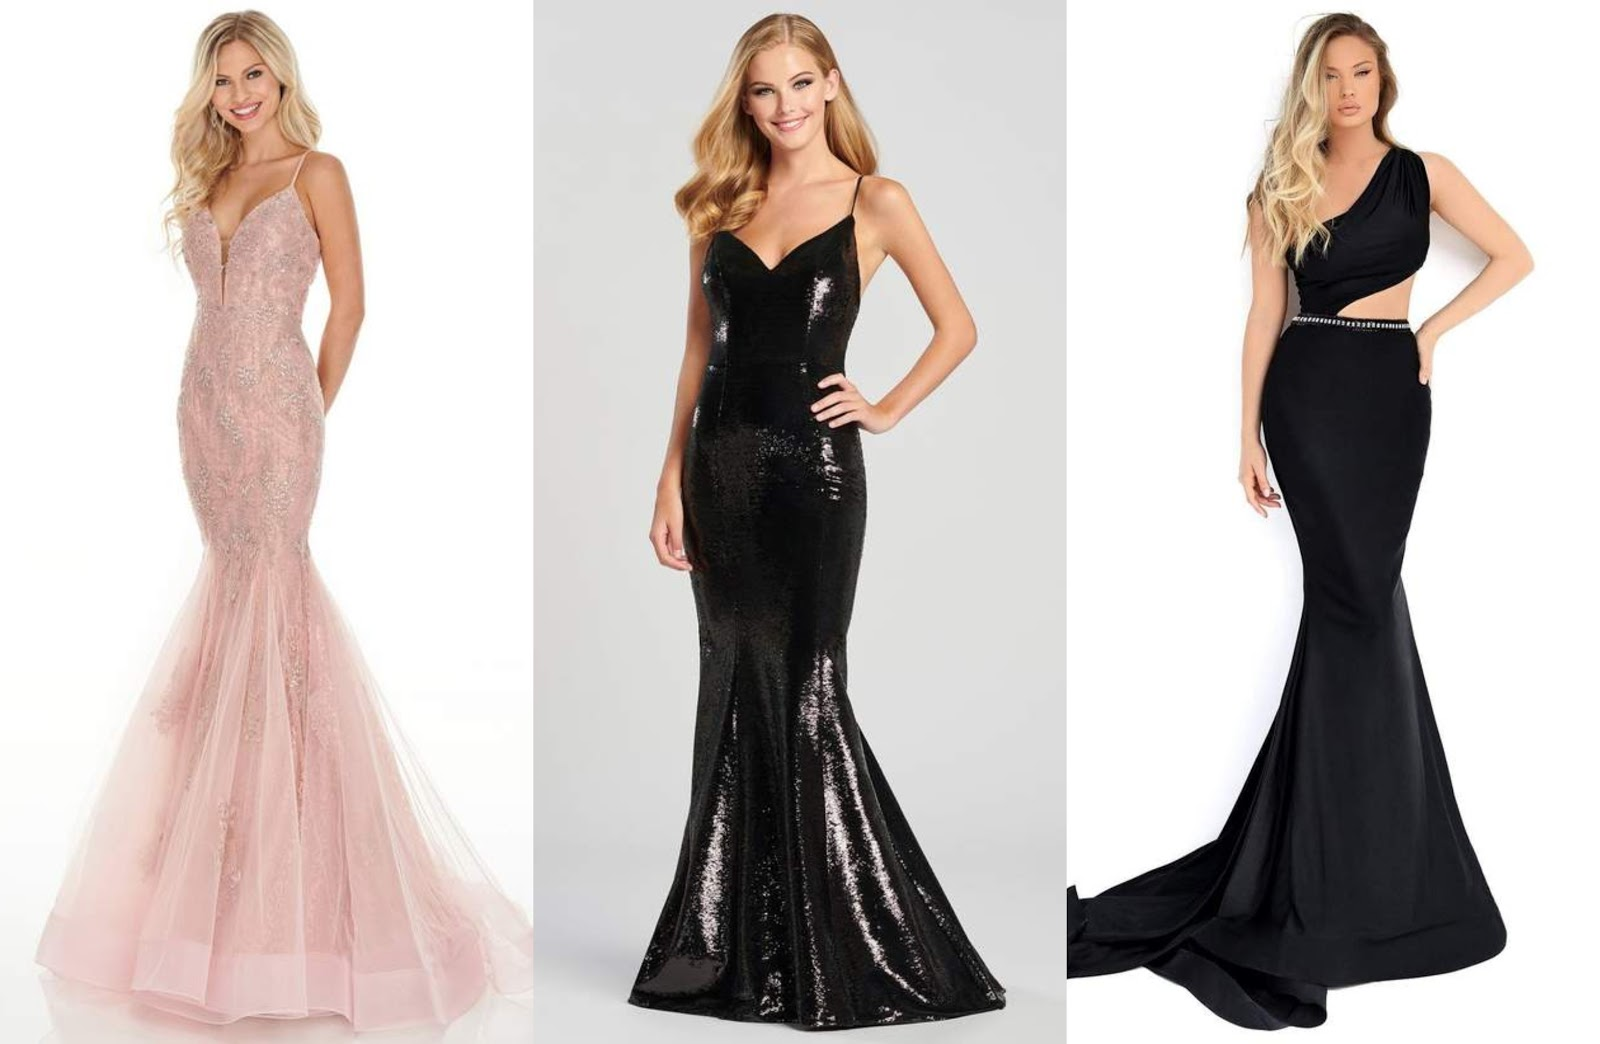 Buying Mermaid Dresses